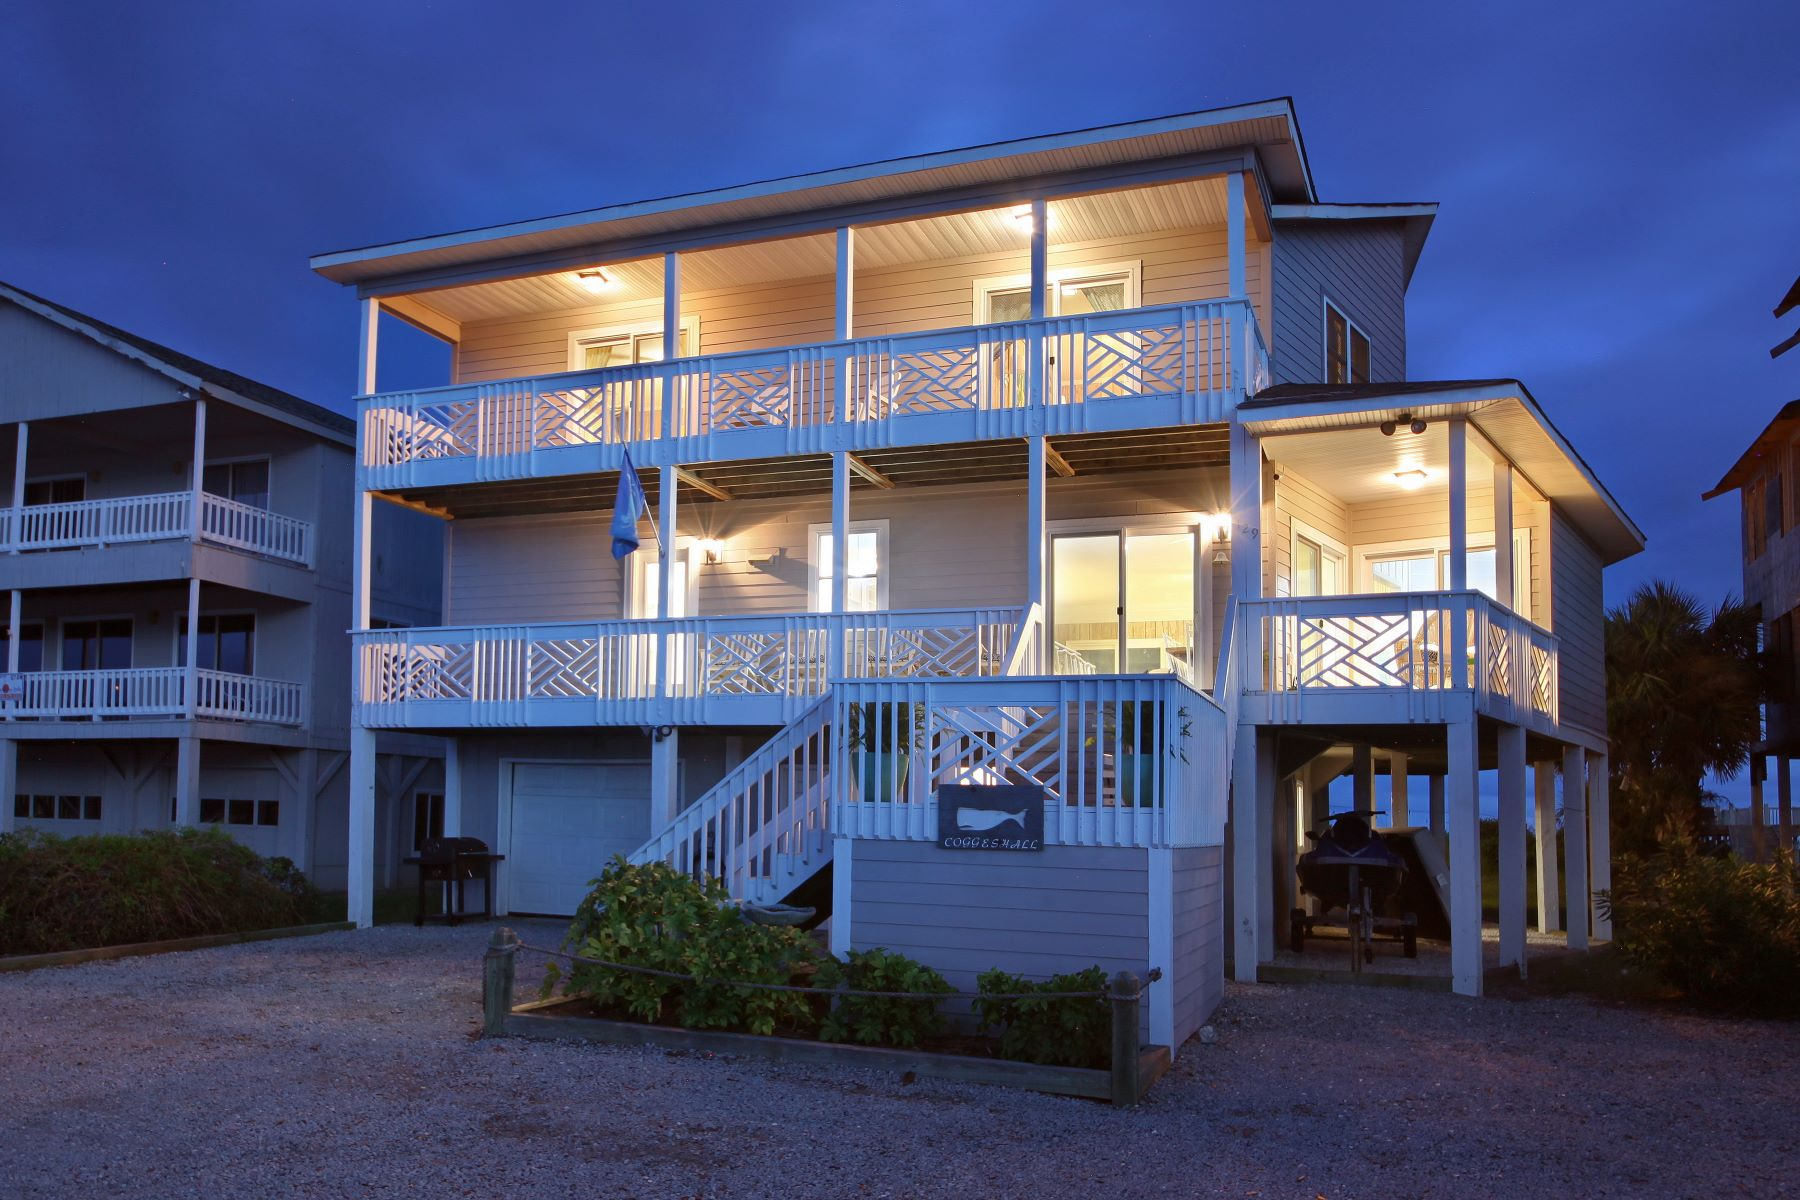 Single Family Homes for Active at Custom Designed One Owner Oceanfront Residence 129 Ocean Isle West Boulevard Ocean Isle Beach, North Carolina 28469 United States